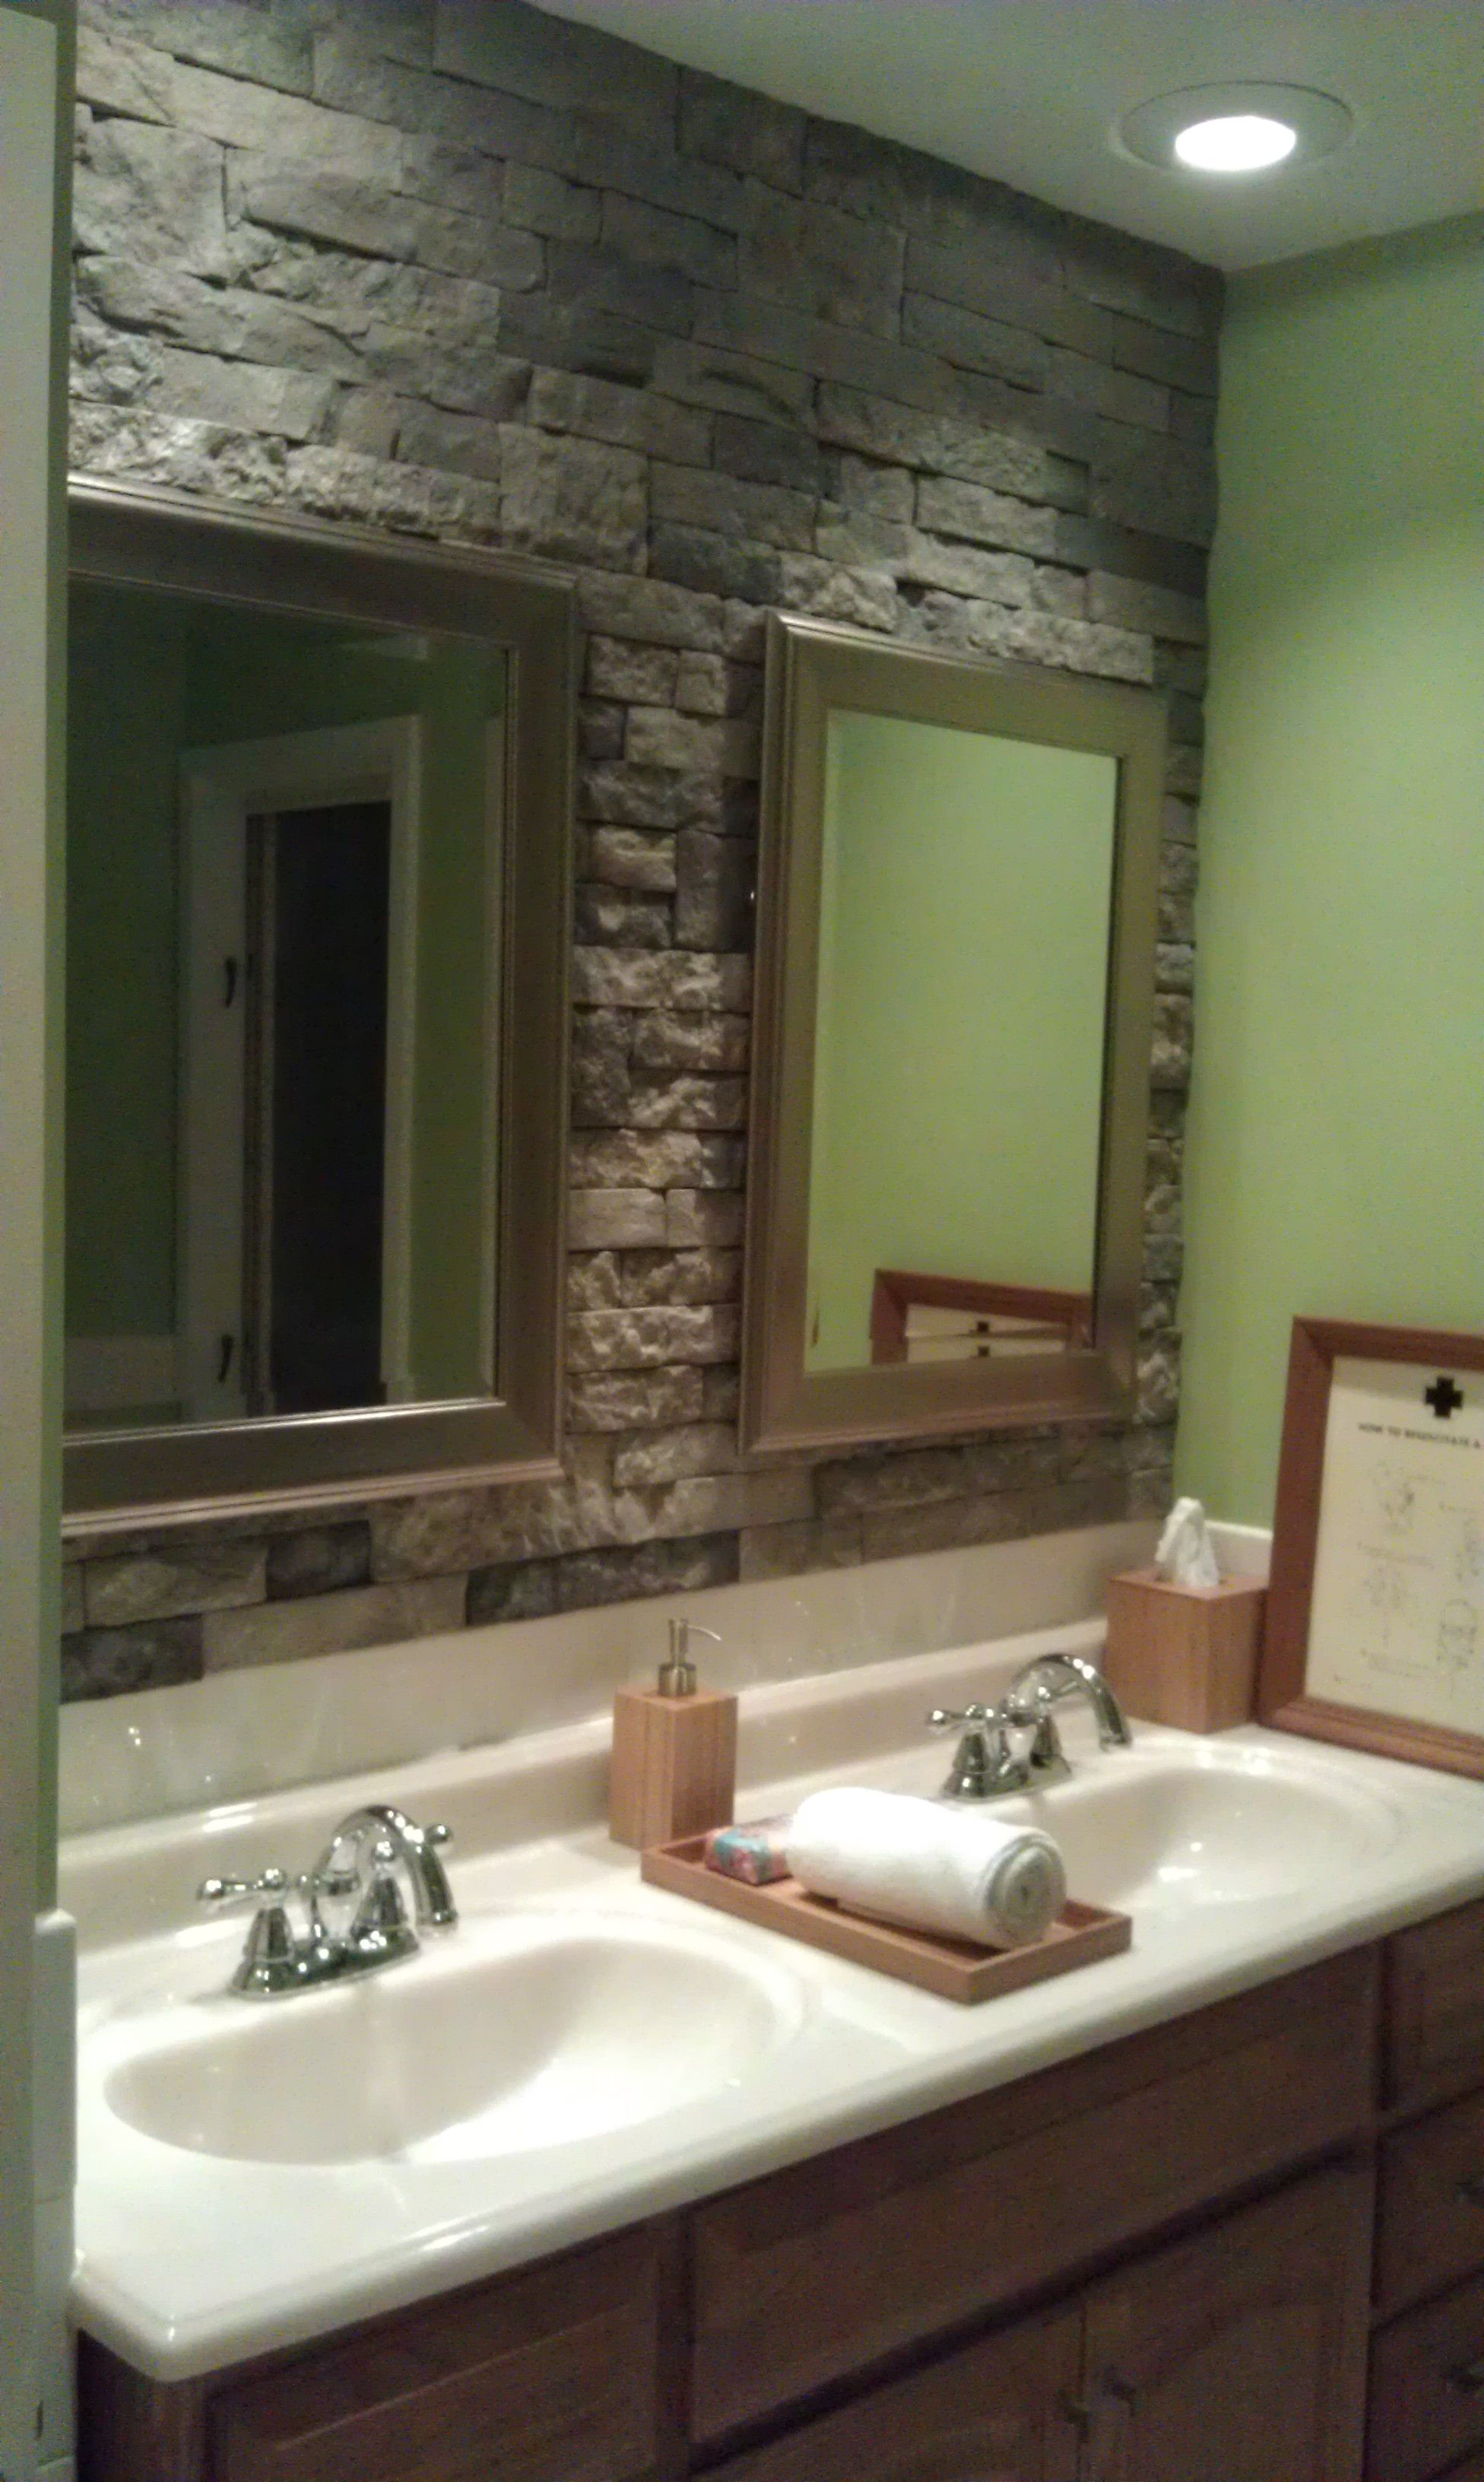 airstone stone accent wall in bathroom Cant wait to do this I saw the demo at Lowes and Im